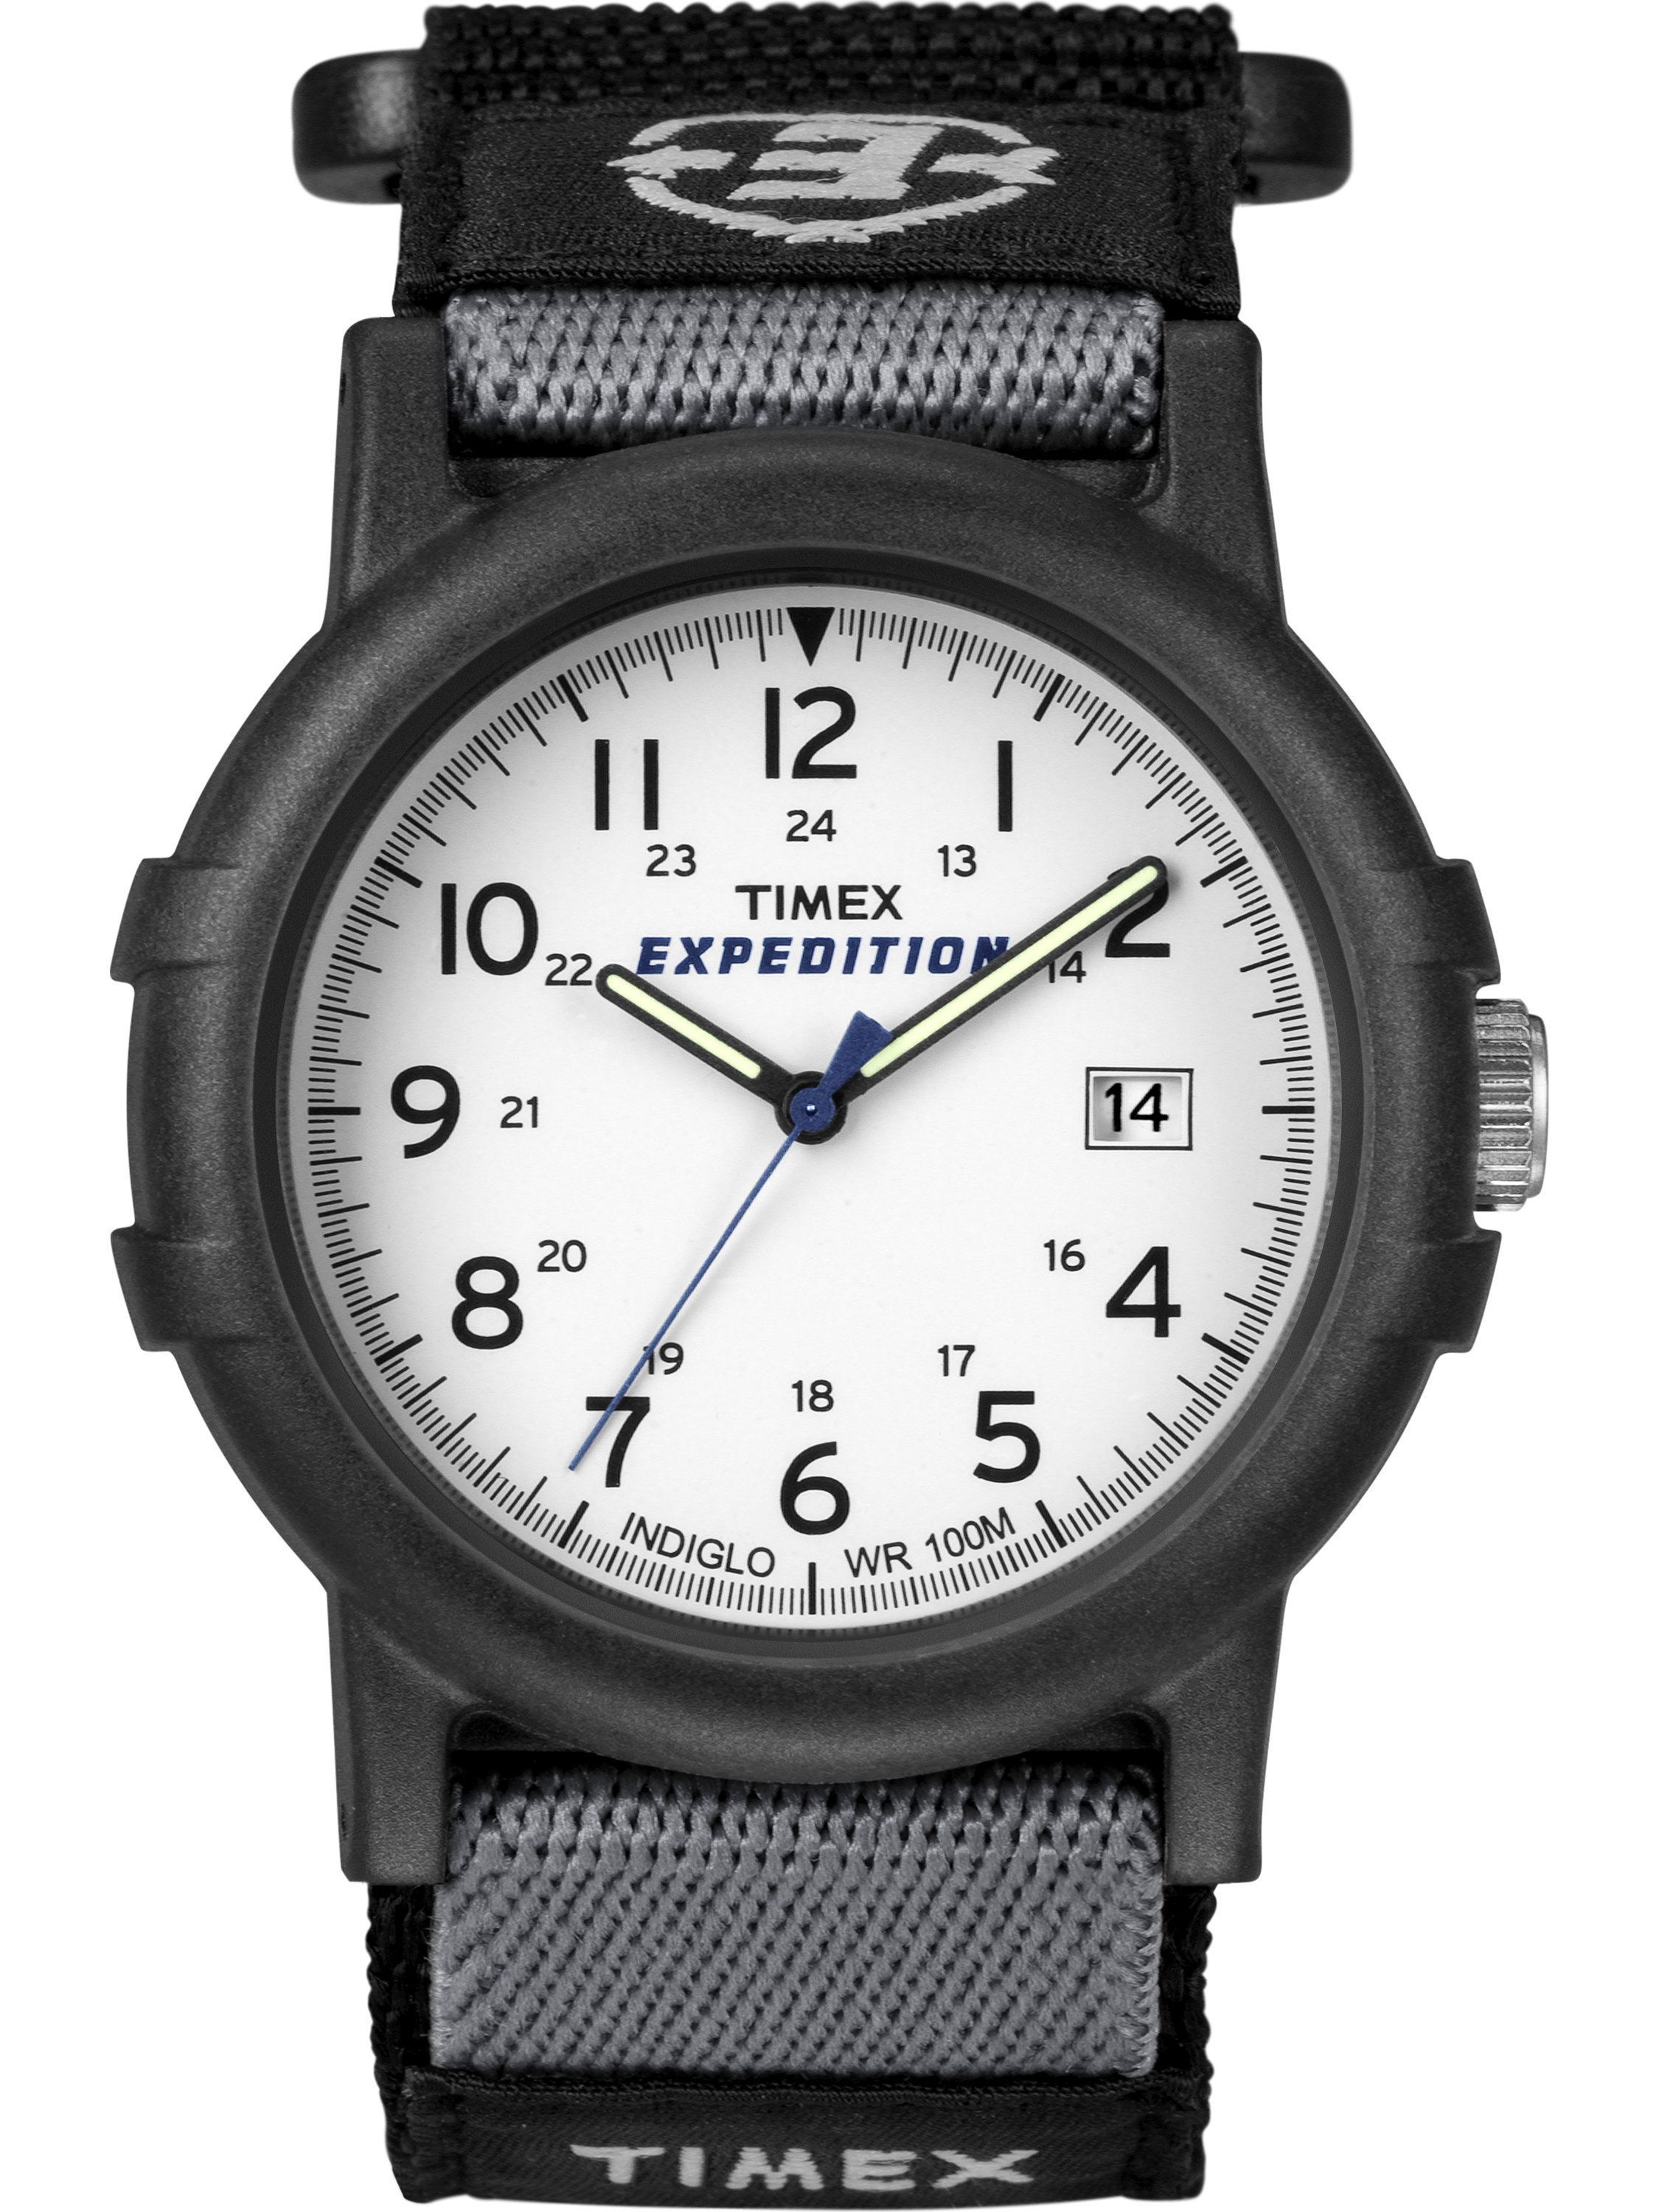 Timex Men's Expedition Camper Watch, Black Fast Wrap Strap